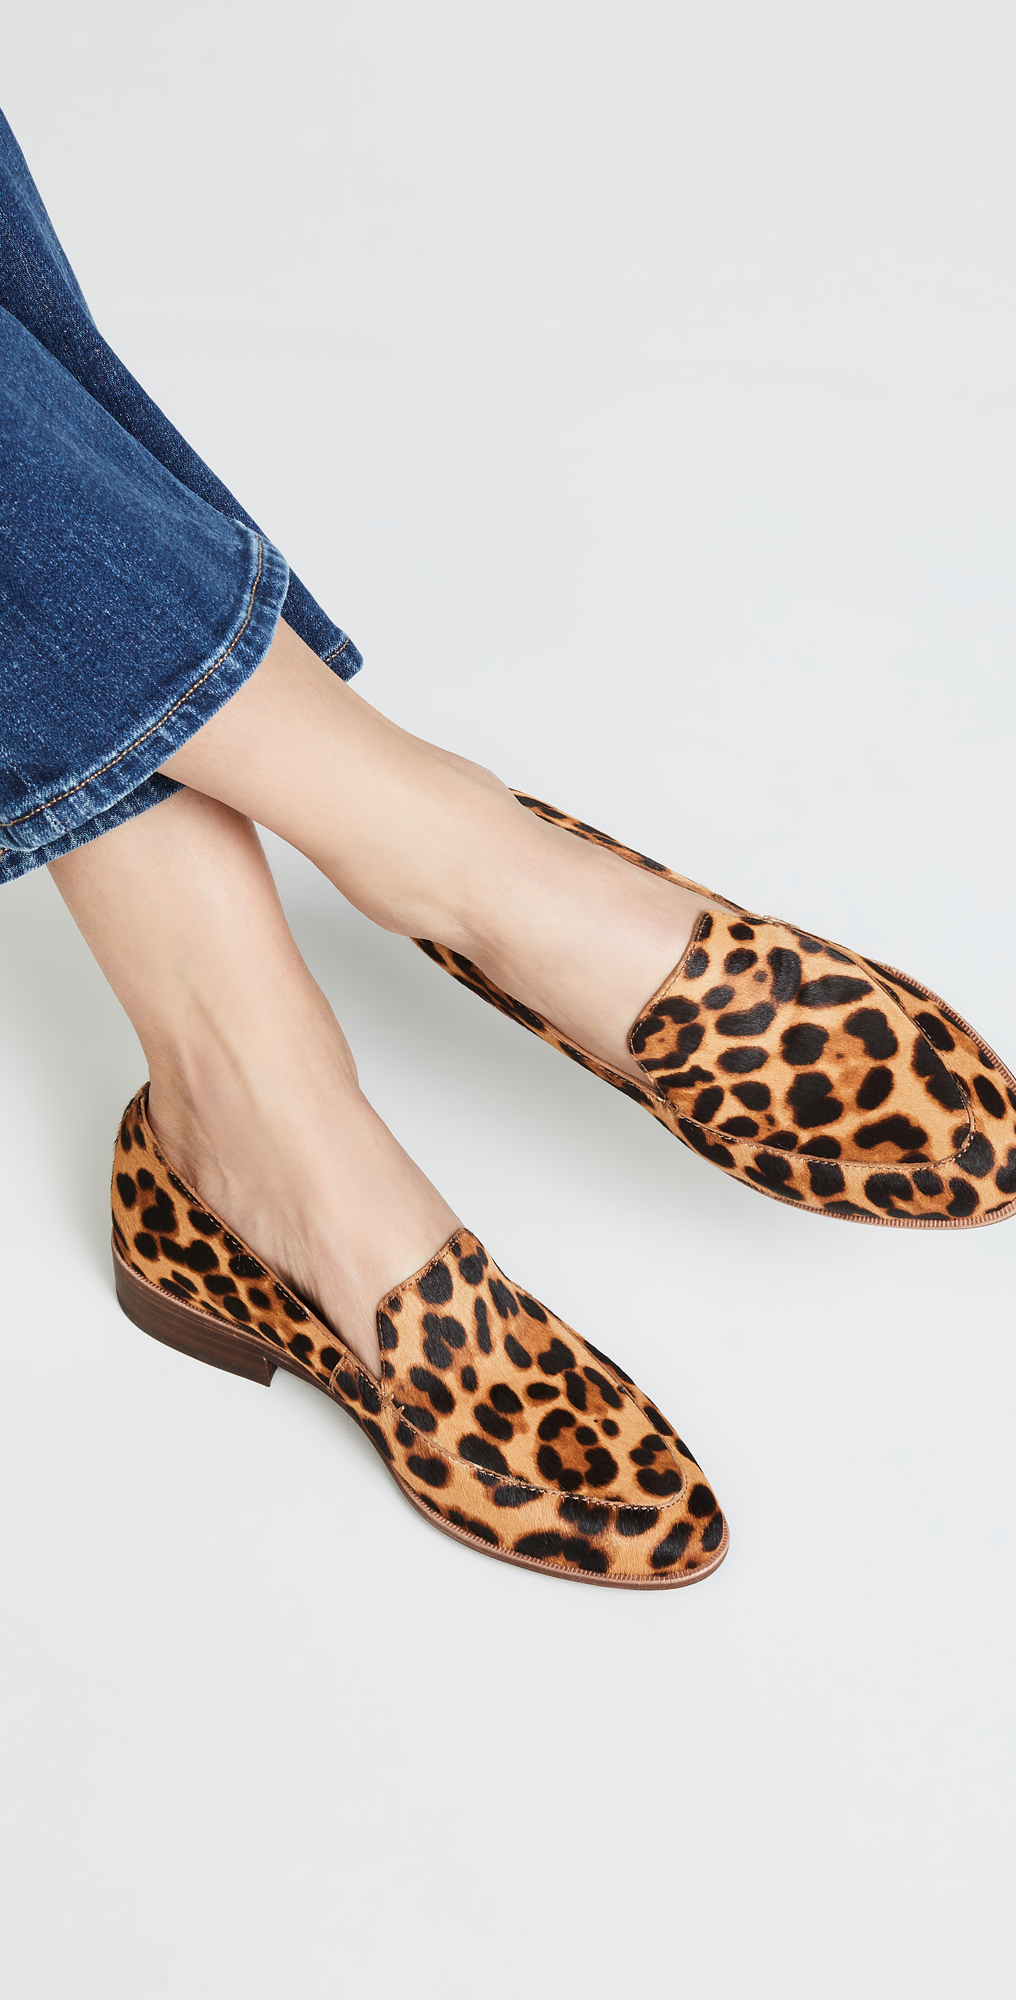 63e68f66a22 Madewell Frances Leopard Loafers